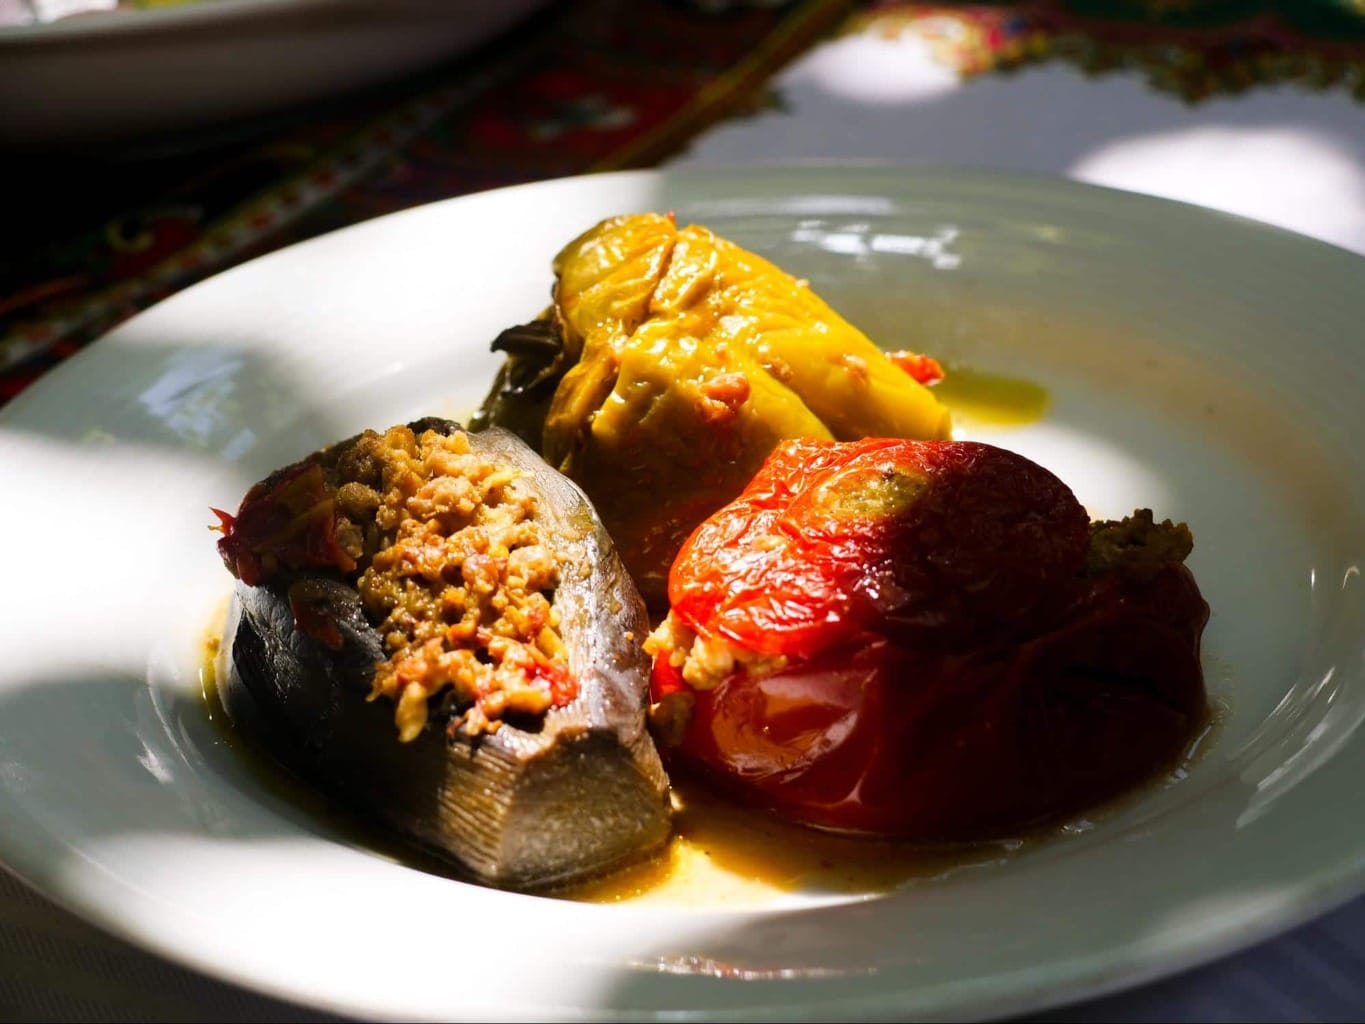 Stuffed Vegetable dolma